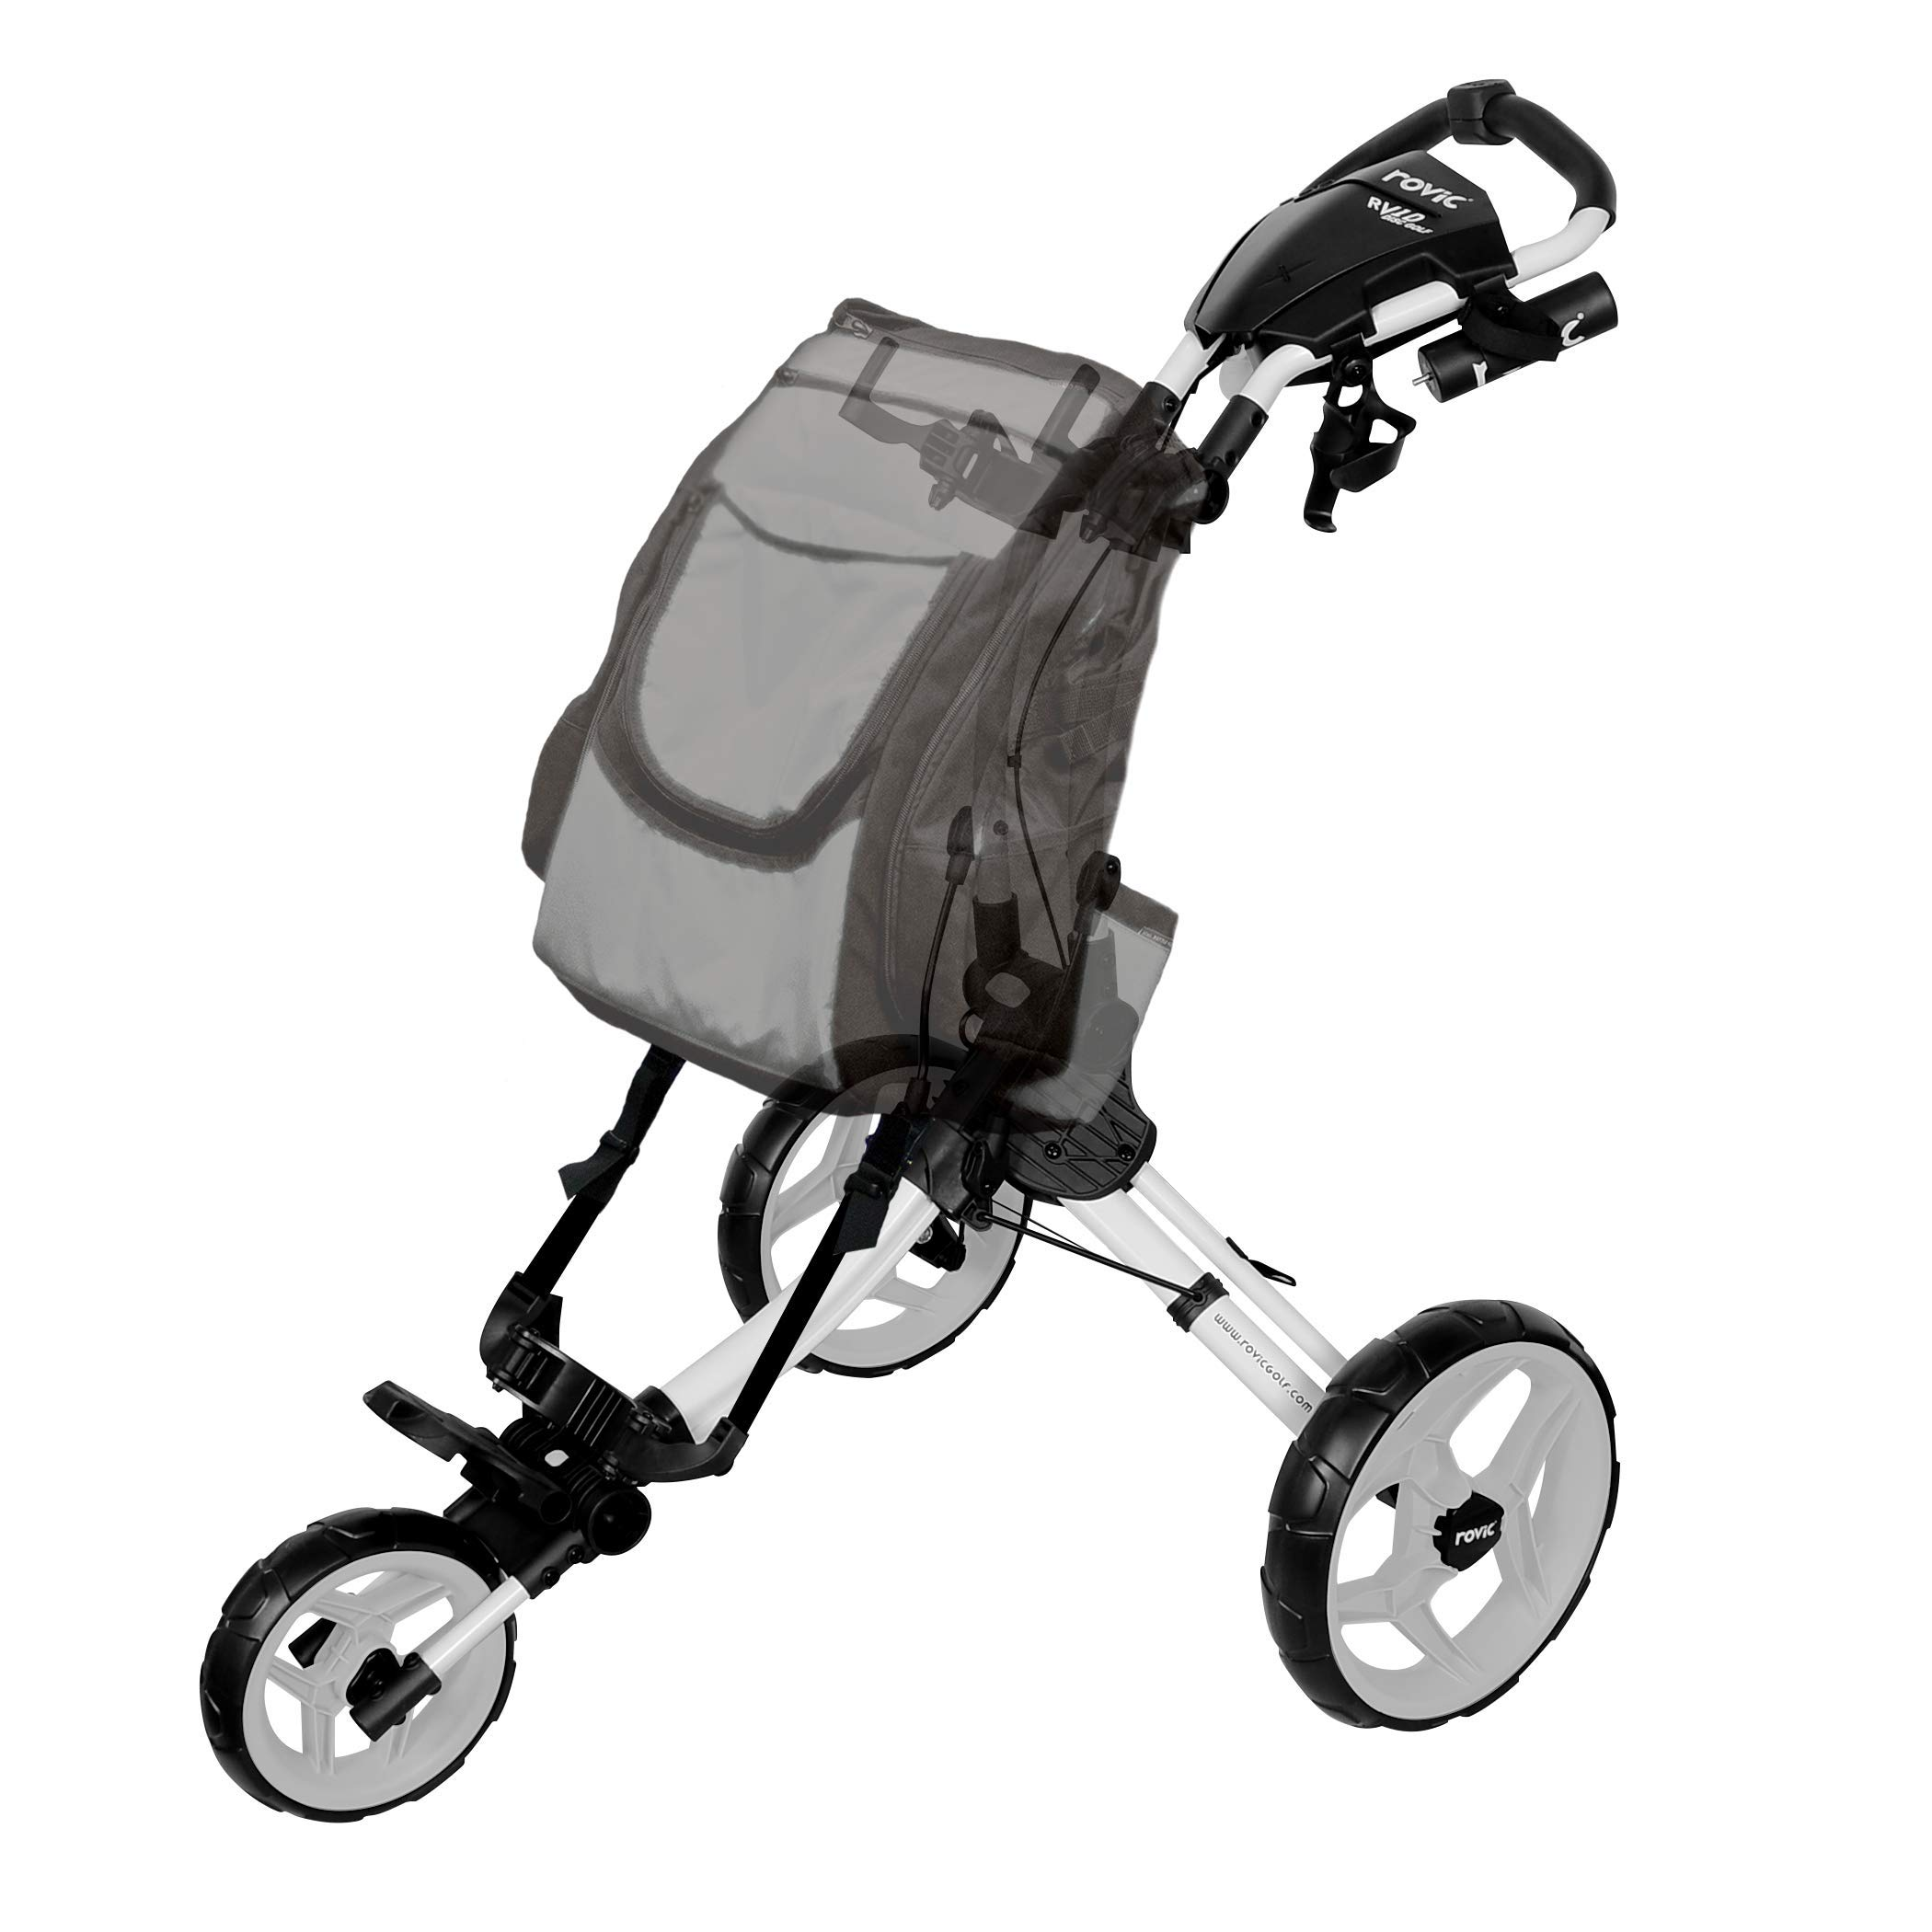 Rovic RV1D 3-Wheel Disc Golf Push Cart   Fits All Disc Golf Backpacks (Arctic/White) by Rovic